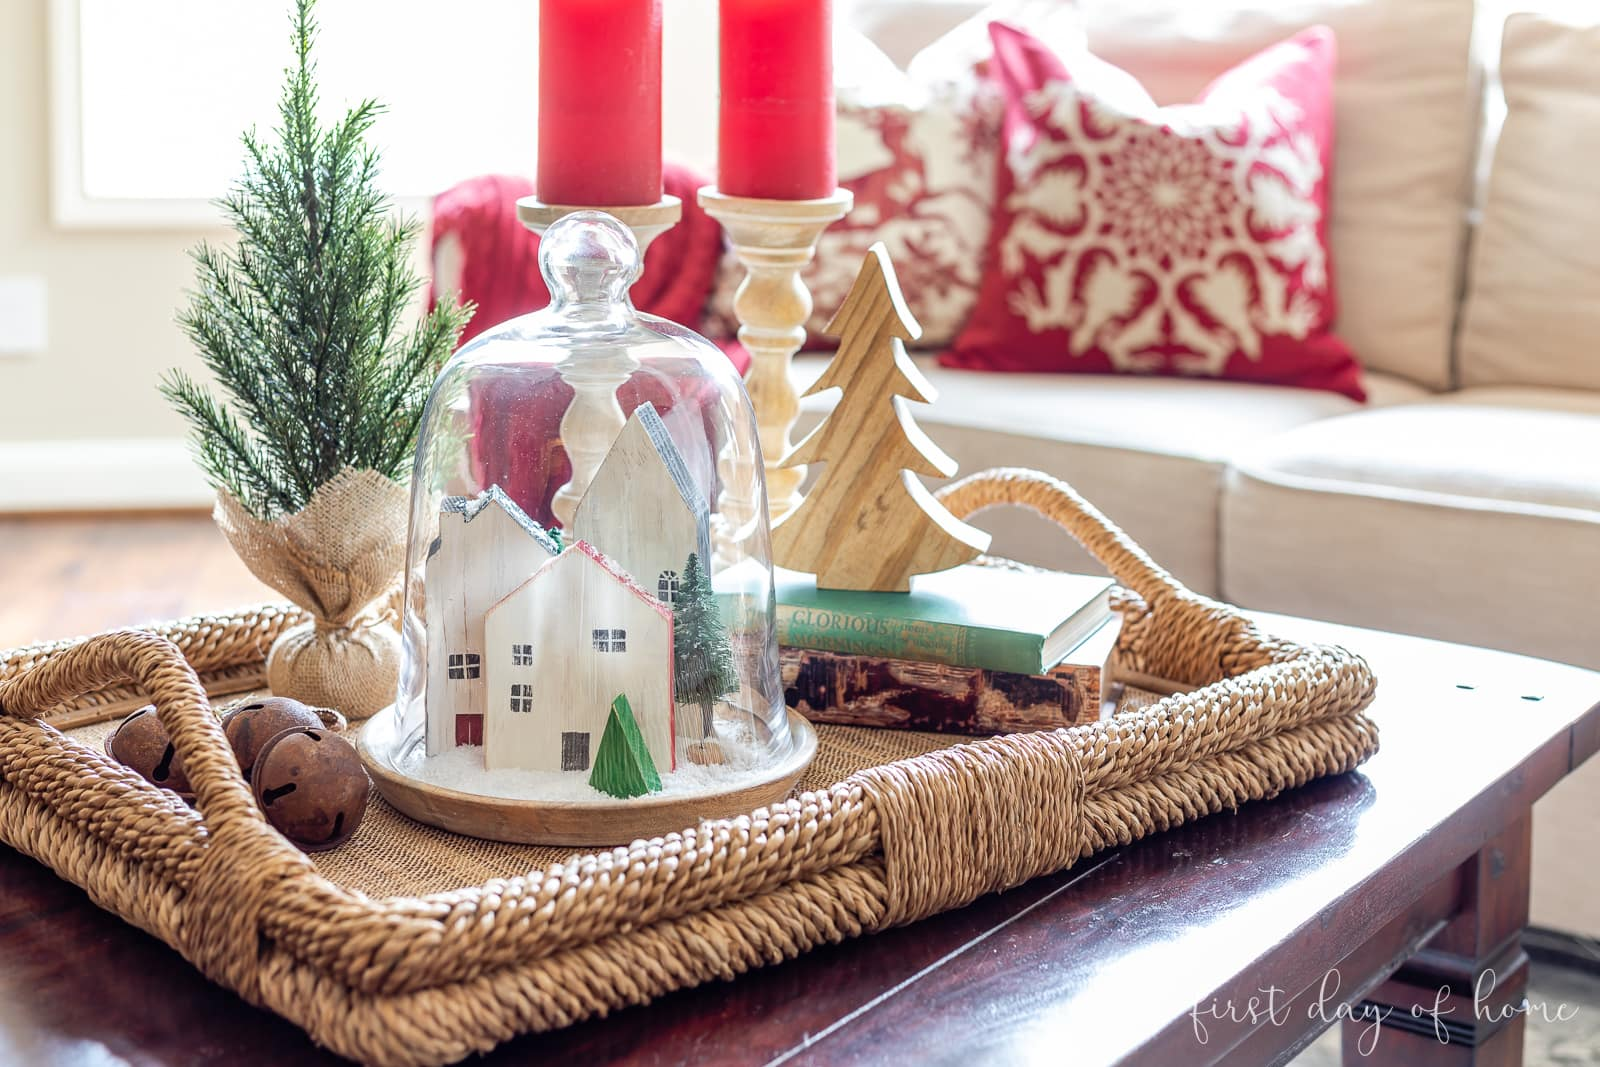 Christmas coffee table centerpiece with Christmas cloche containing mini houses made from wood